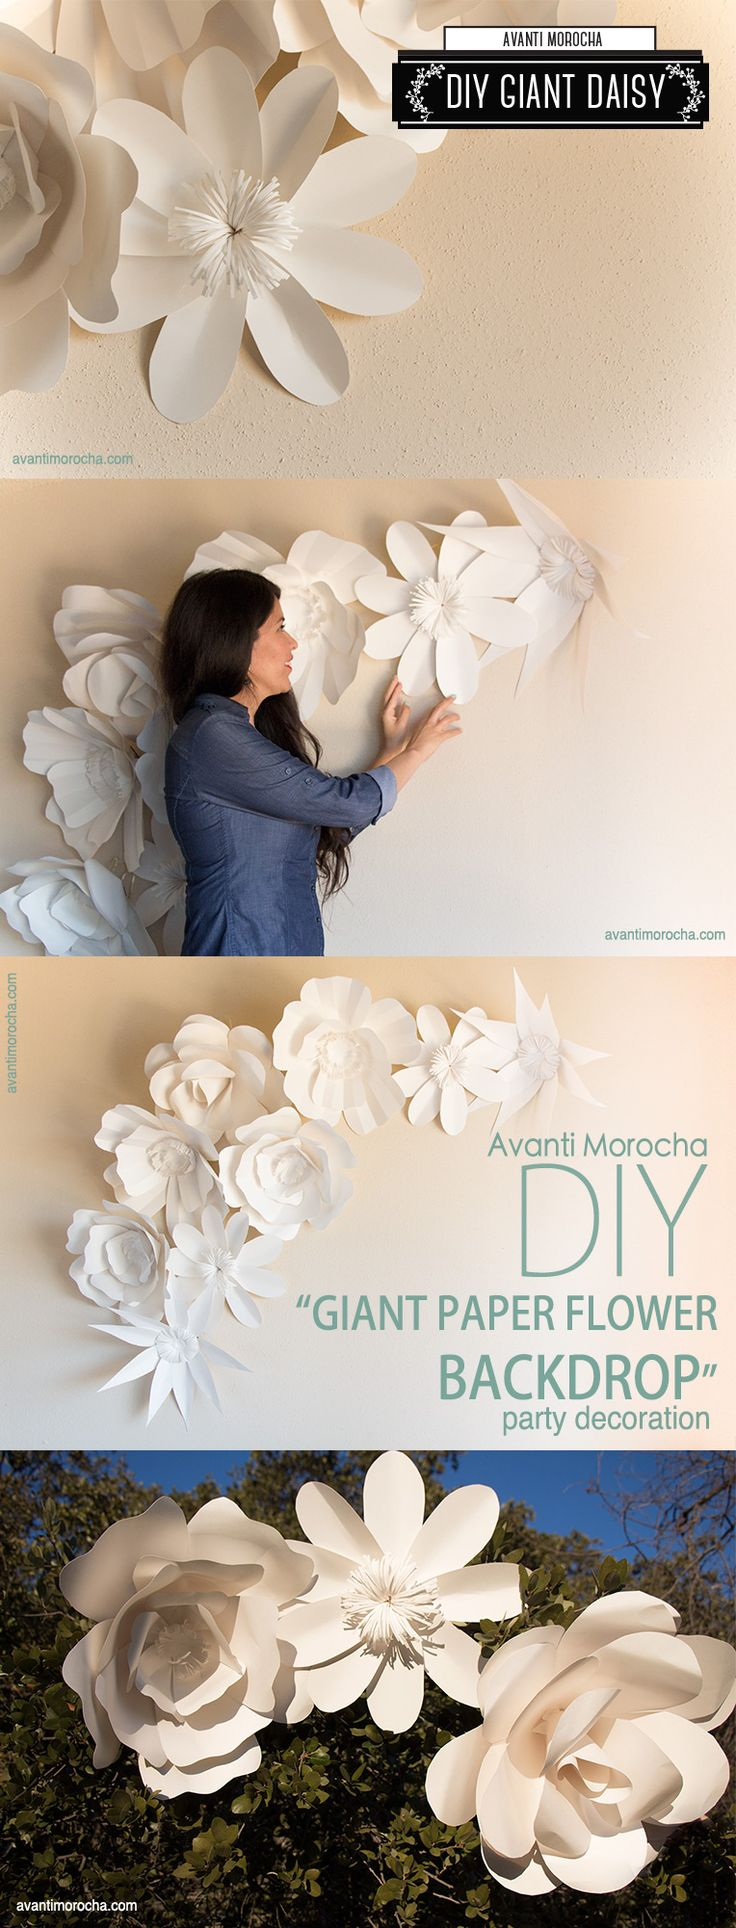 "DIY "" Giant Paper Flower Backdrop"" Weddings, event decor"